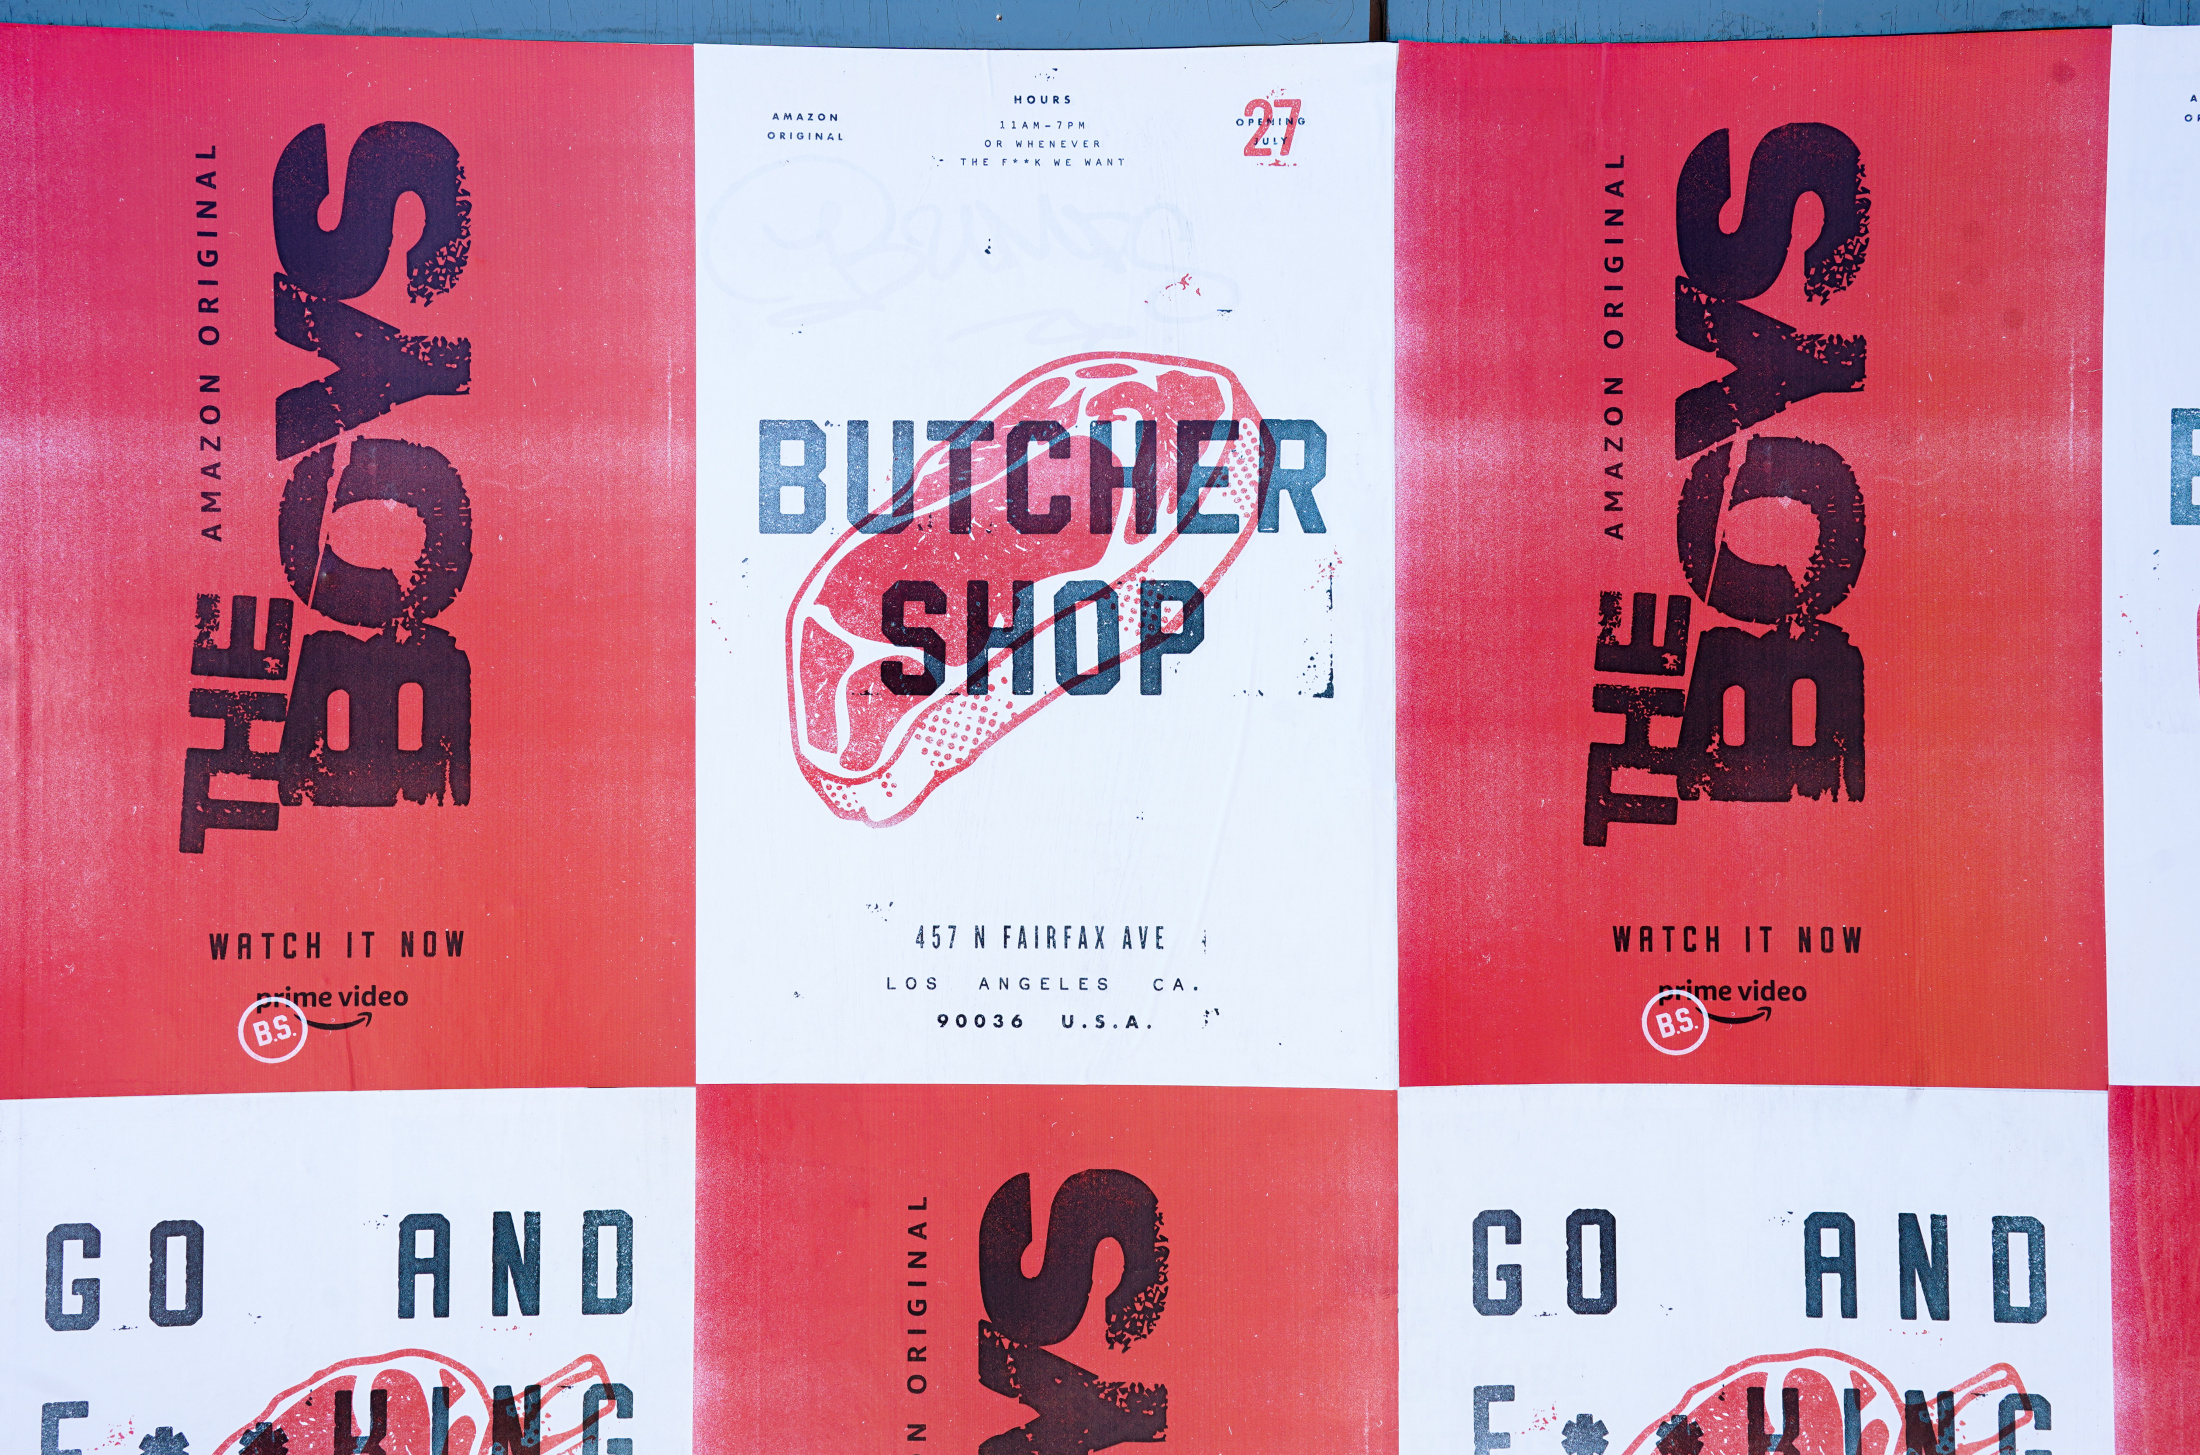 Image Media for The Boys - Butcher Shop